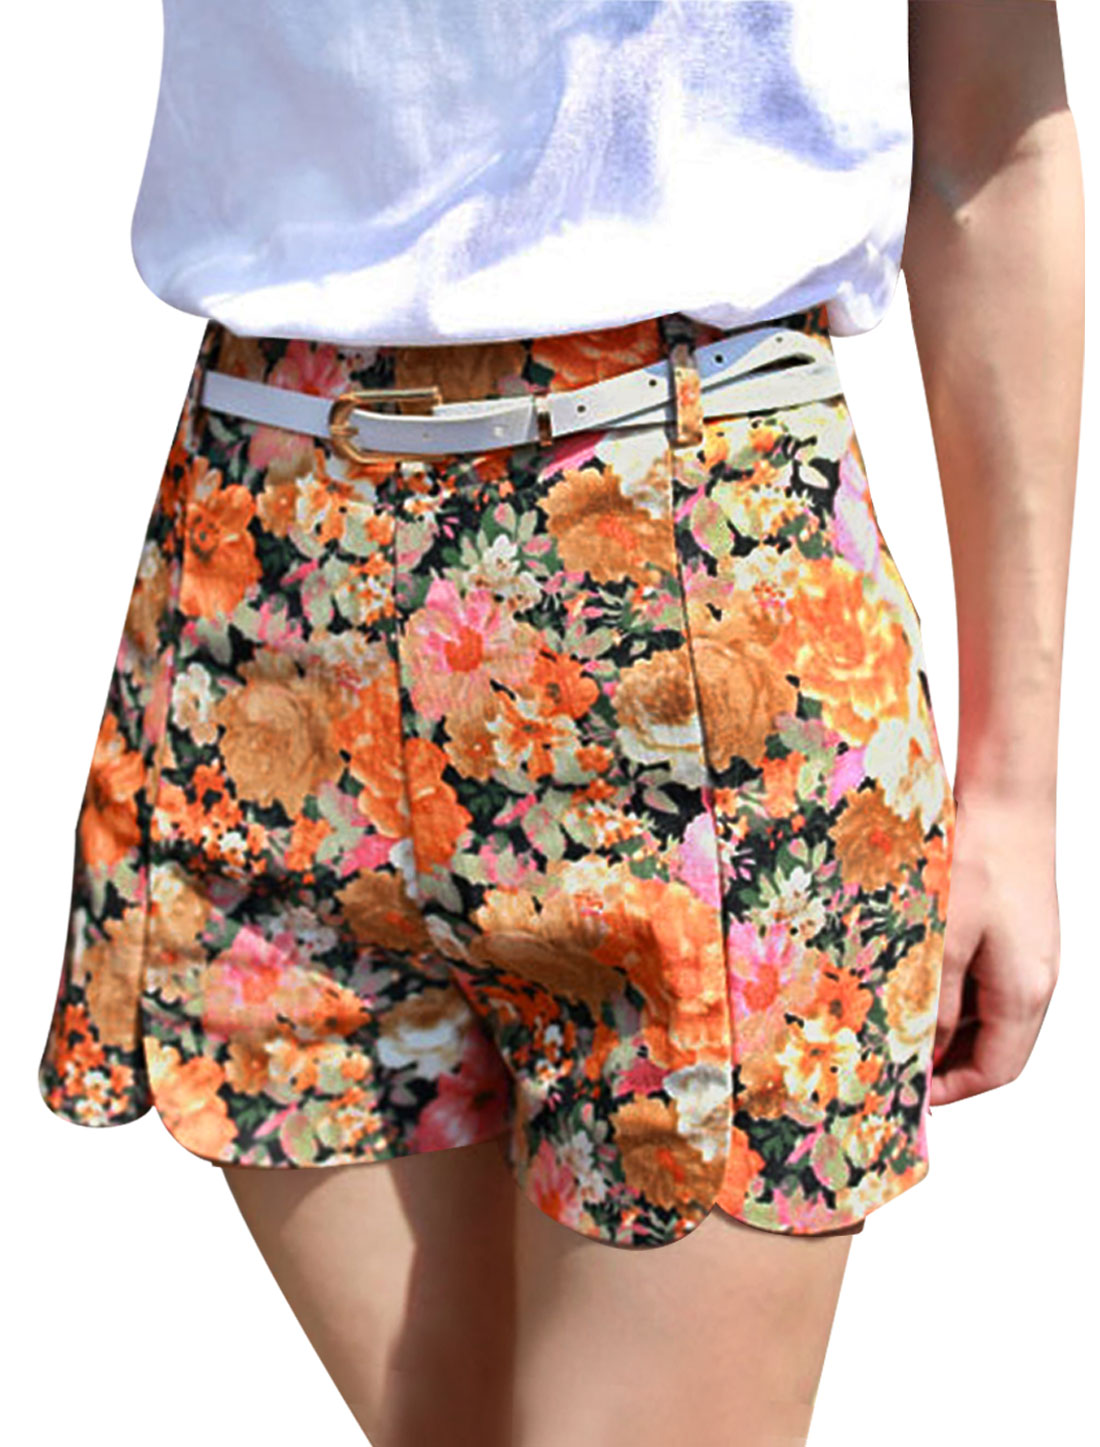 Ladies Elastic High Waist Floral Prints Mini Shorts w Belt Orange XS